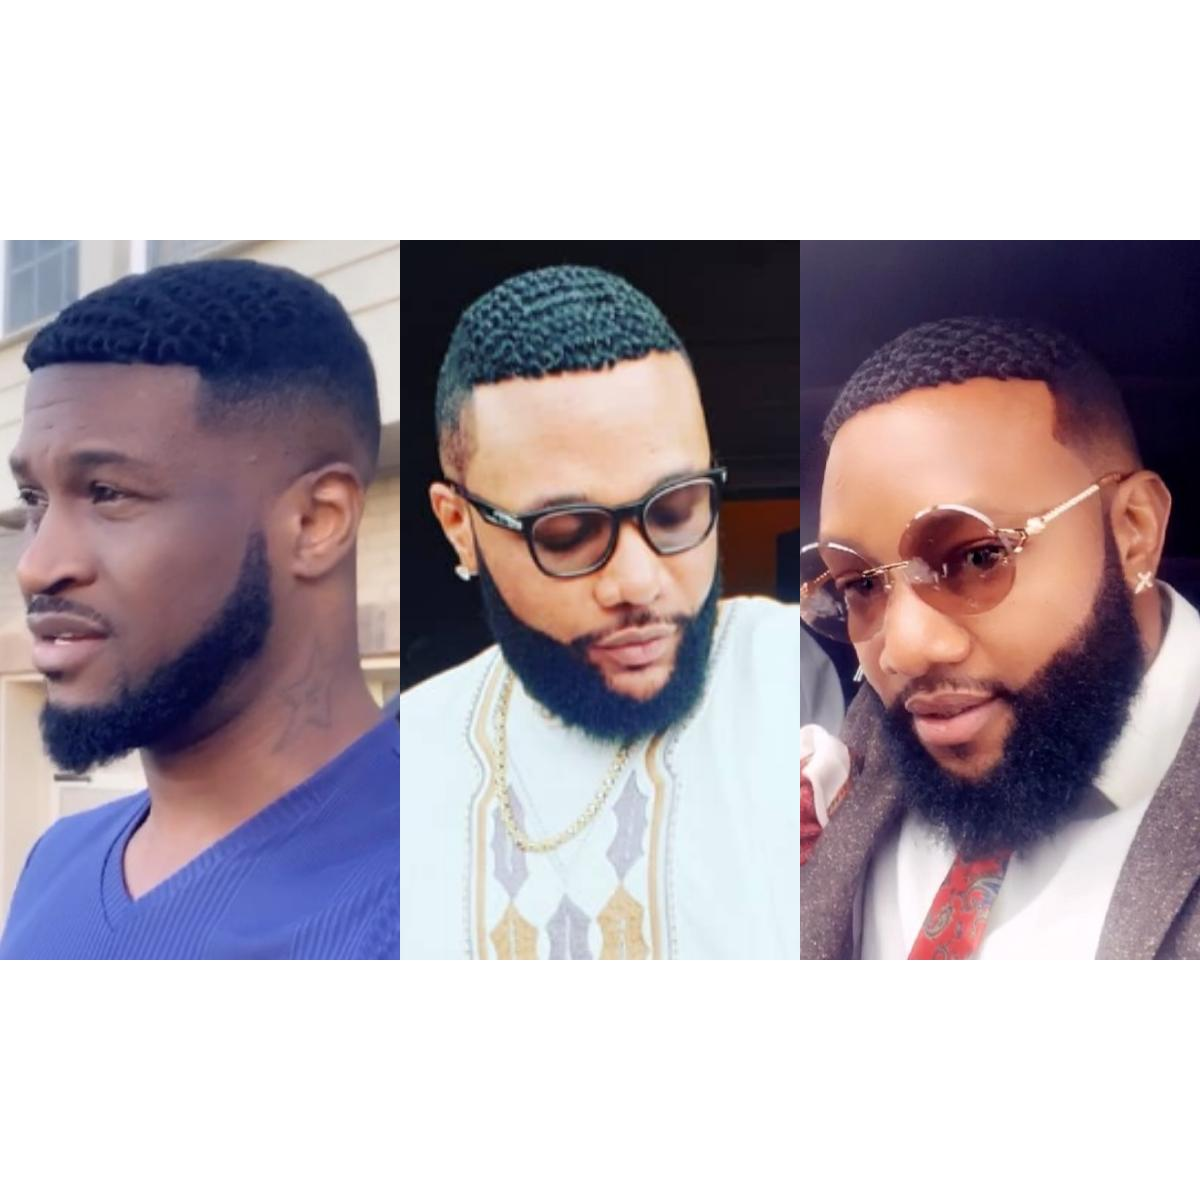 Nana Obah Says Peter Okoye Kcee E-Money Wear Wigs